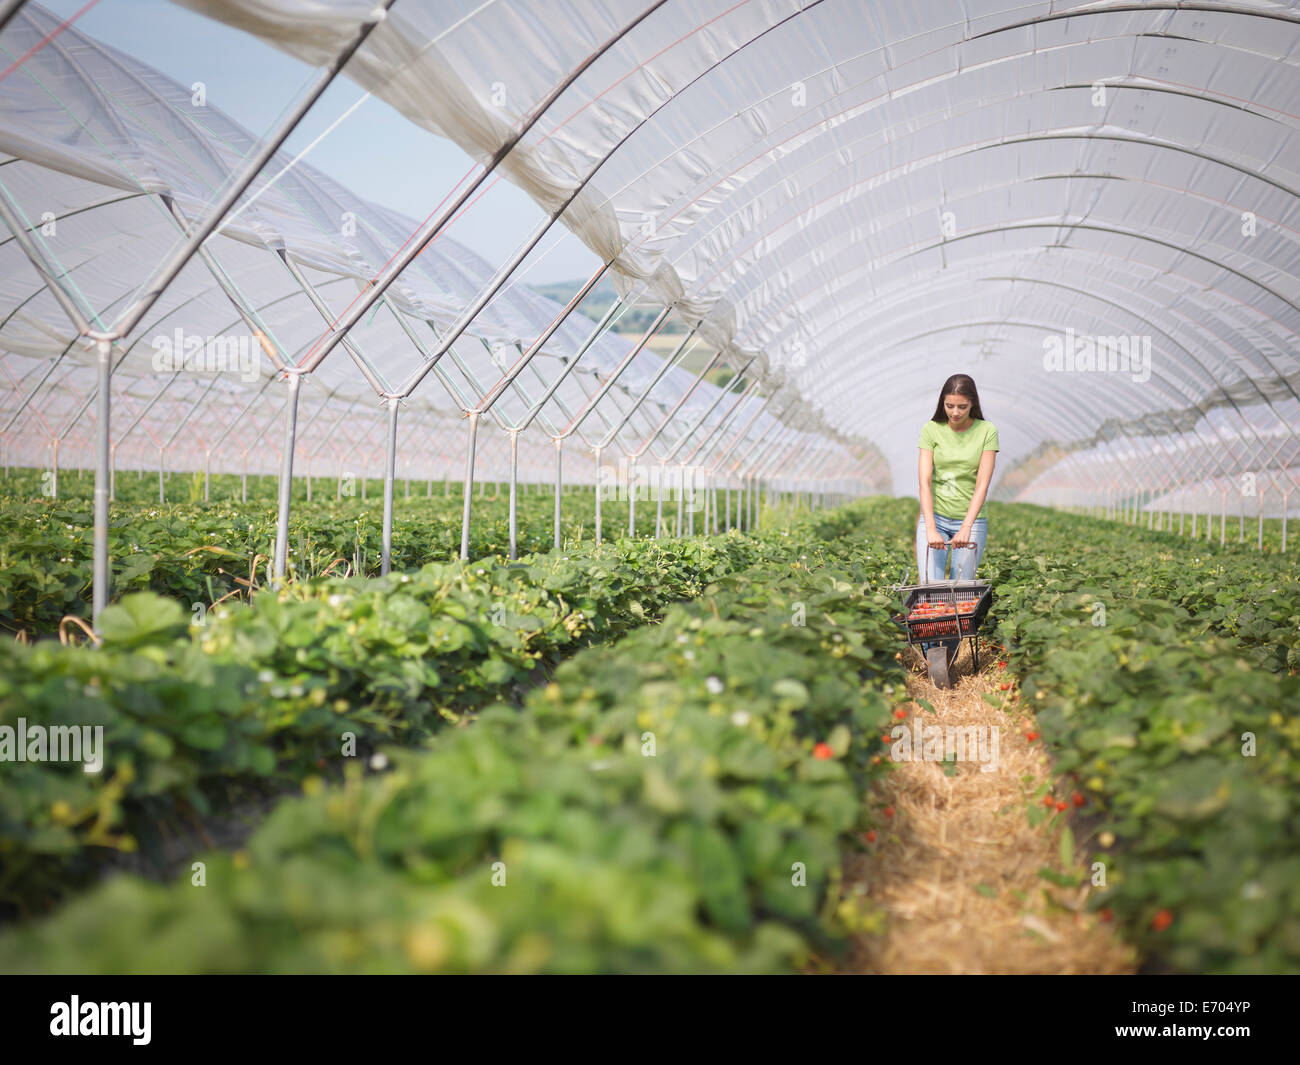 Worker pushing wheelbarrow of strawberries in fruit farm - Stock Image